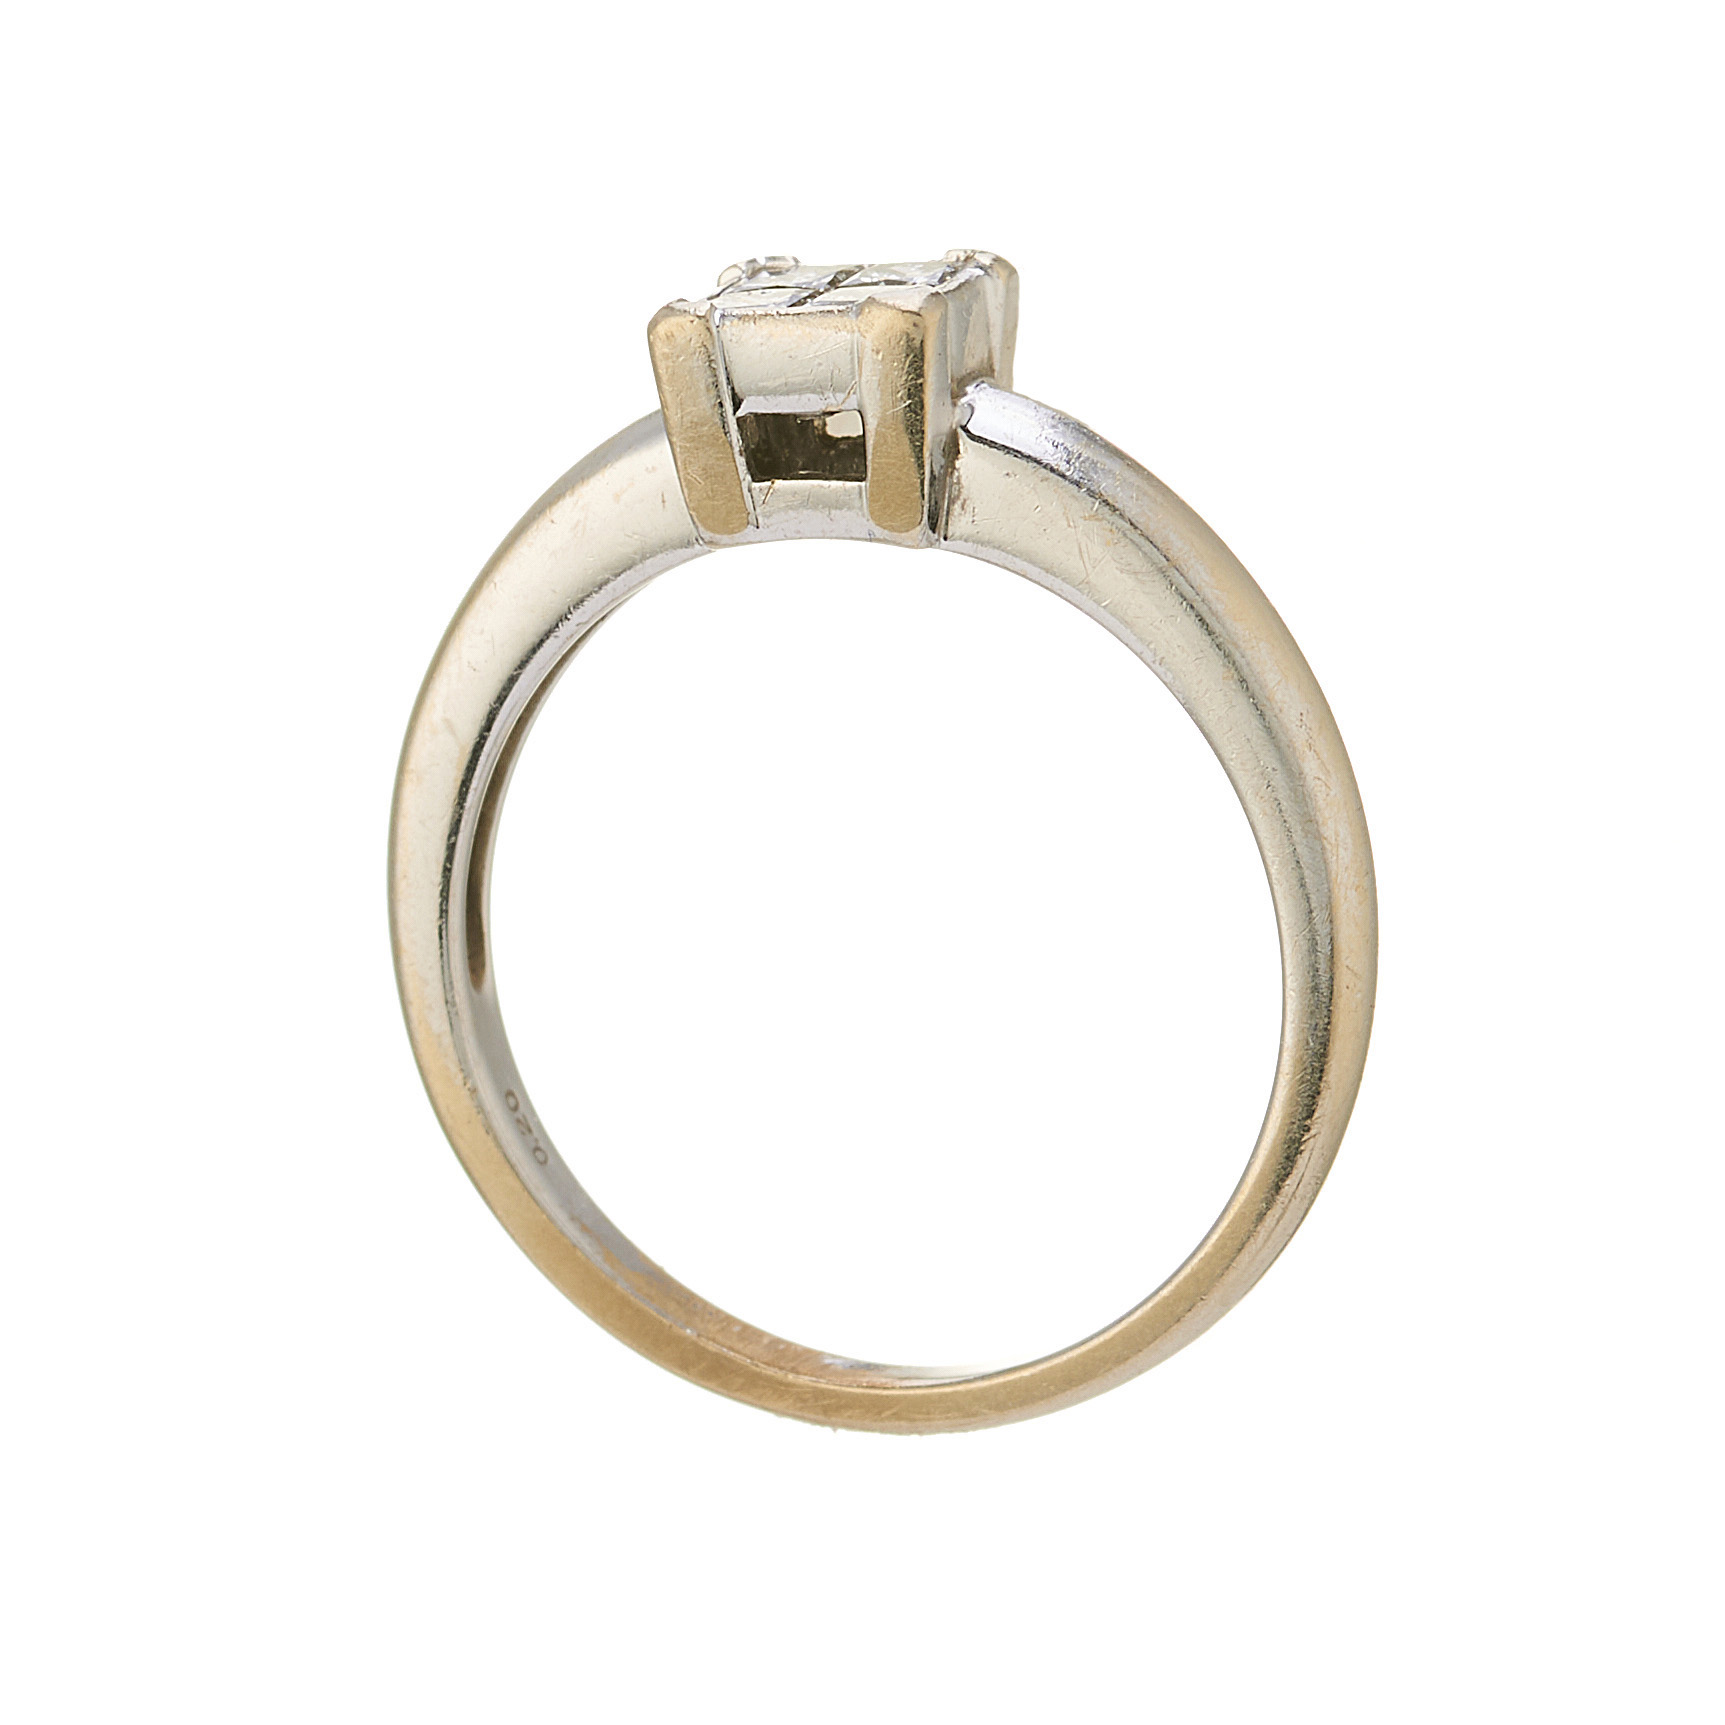 An 18ct gold diamond cluster ring - Image 2 of 2